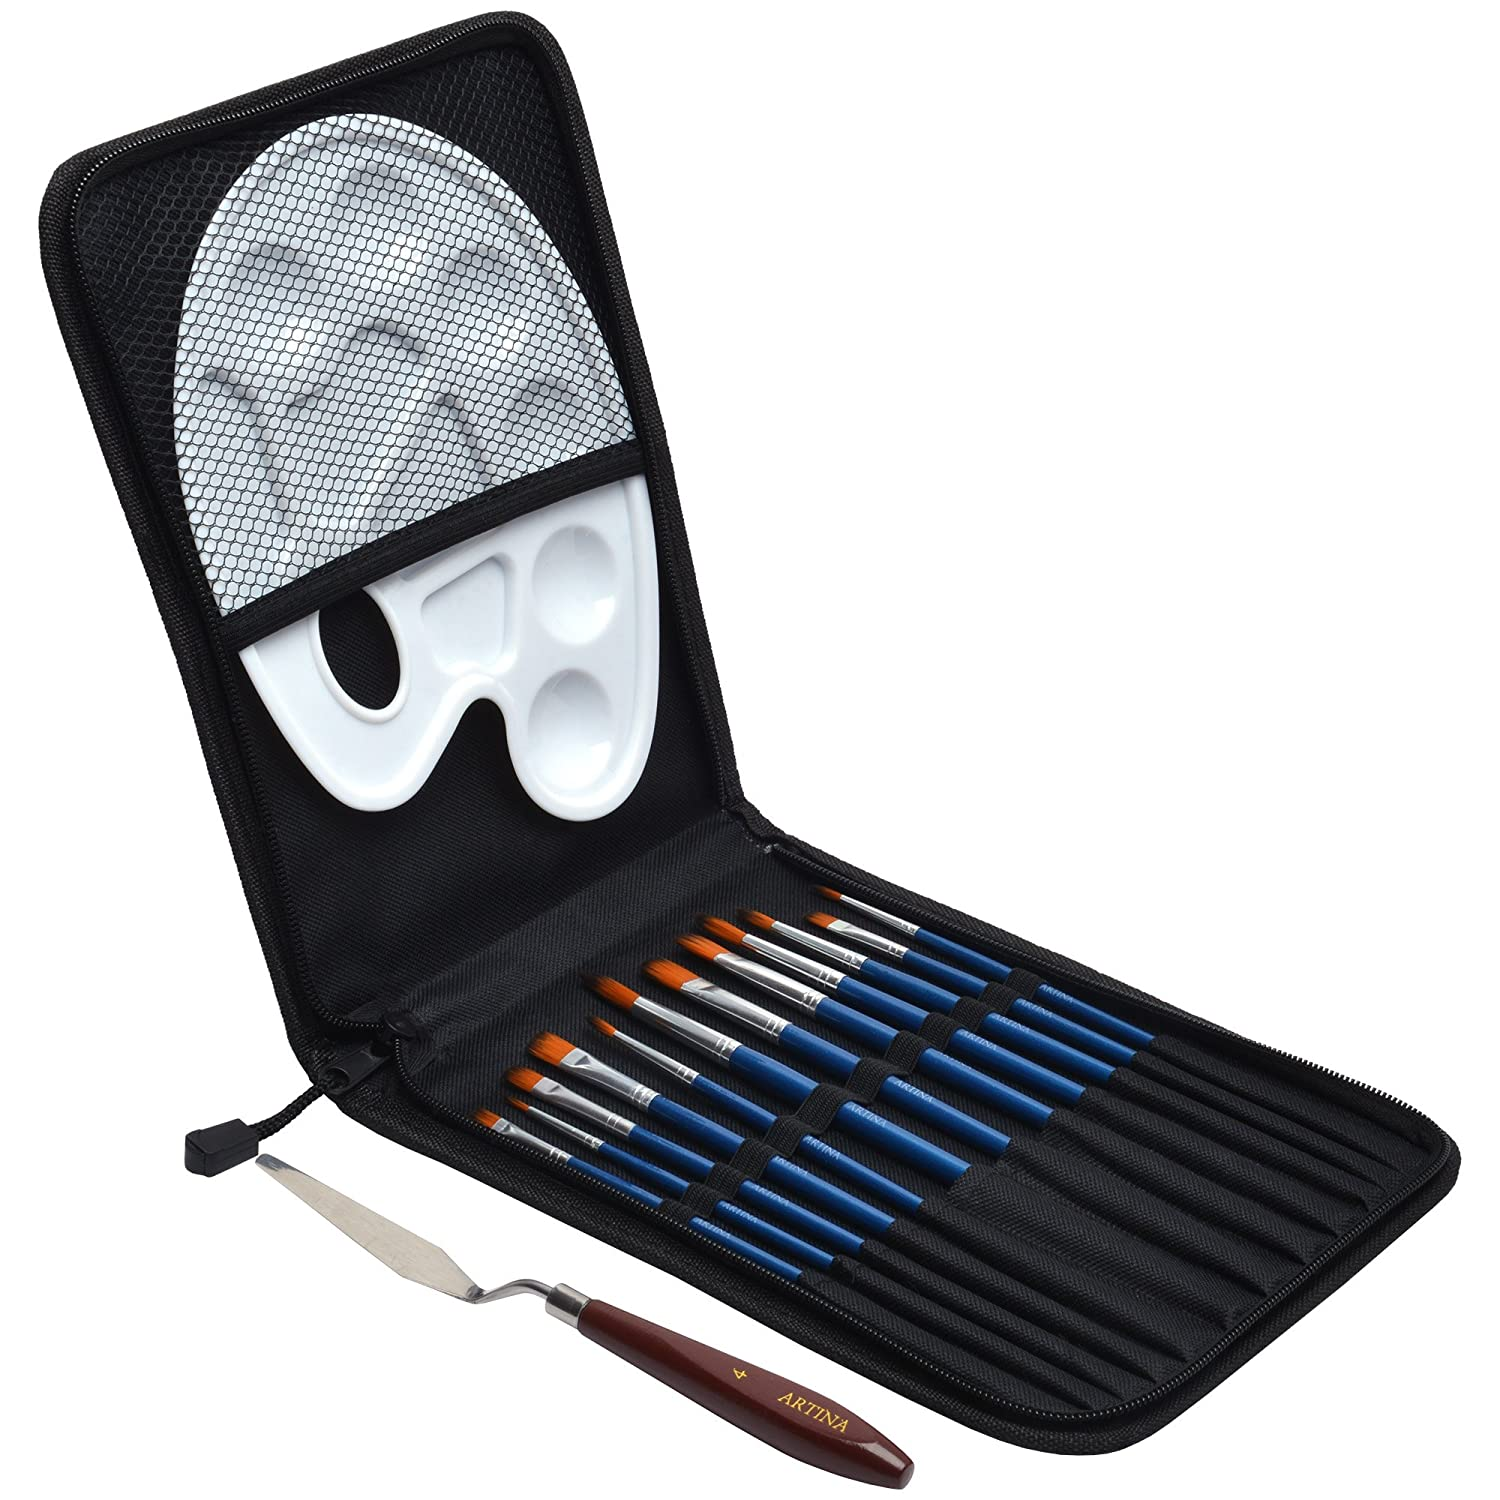 Artina 15pcs Bristle Brush Set Rome Artists Paint Brushes for Acrylic & Oil Painting incl. Case Pallet Brushes Spatula